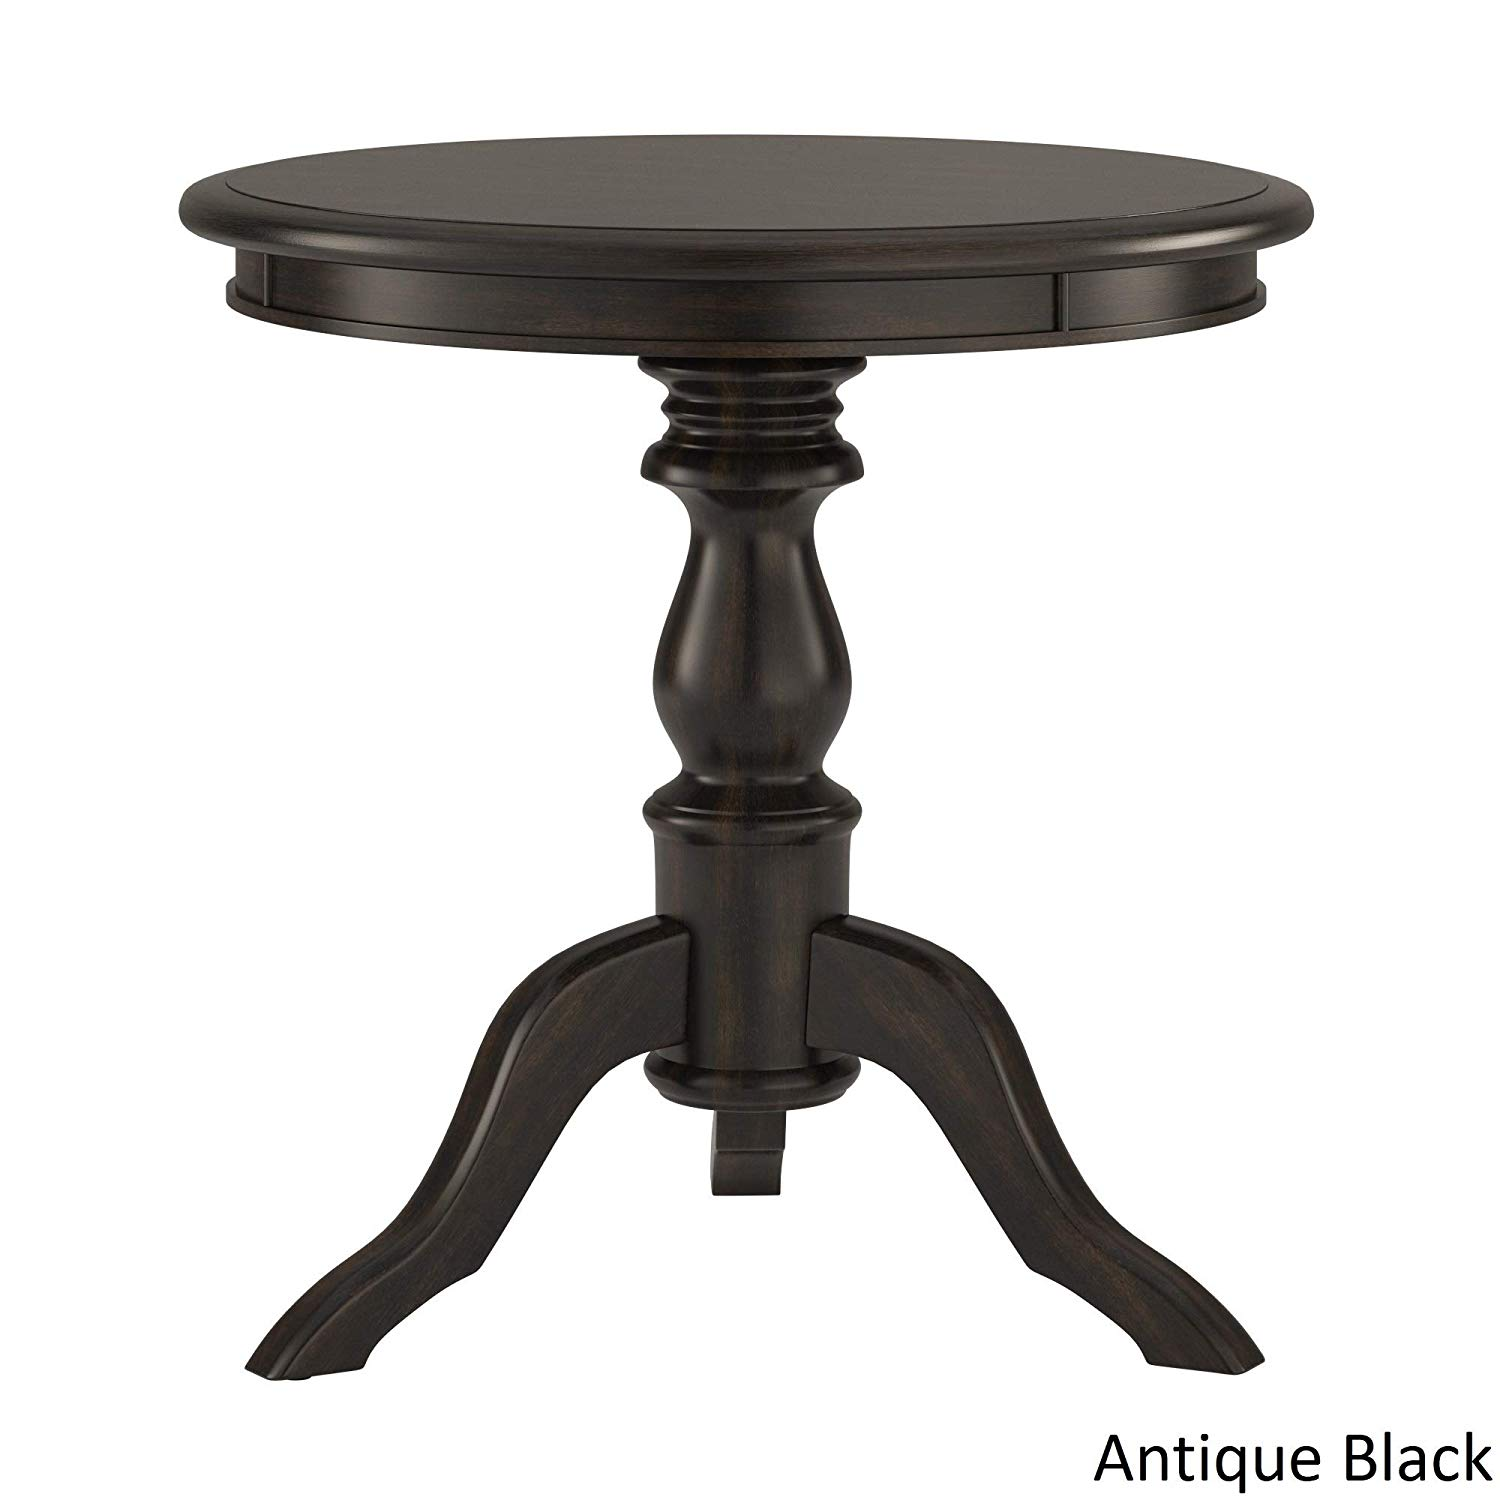 beckett antique wood pedestal accent table inspire round classic black kitchen dining bedside plans beautiful headboards pallet end console chair room tables under patio furniture